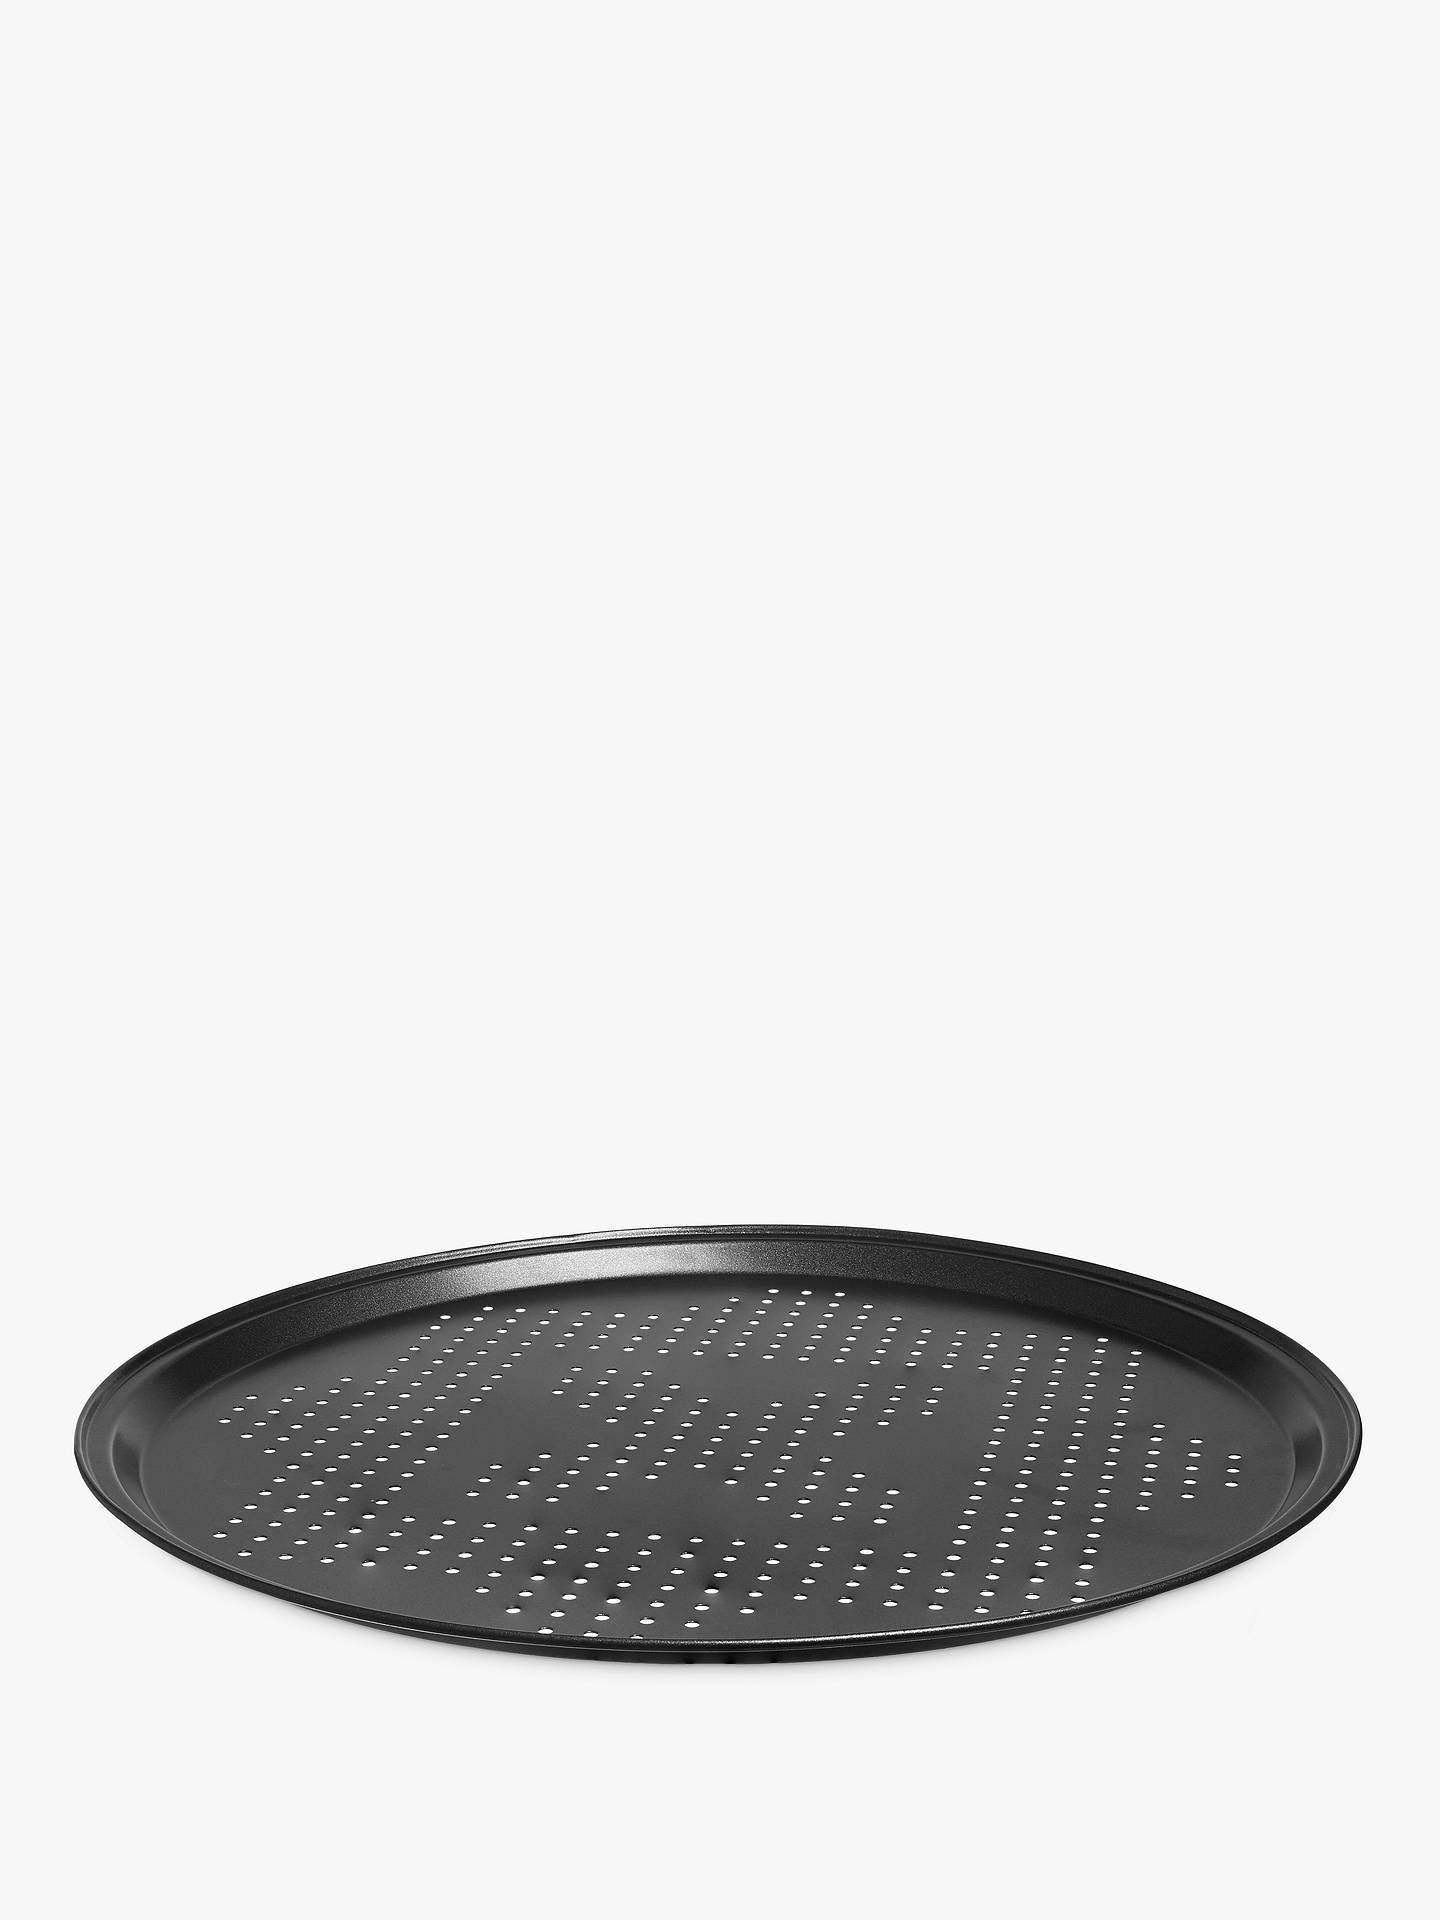 BuyJohn Lewis & Partners Classic Pizza Tray, 30cm Online at johnlewis.com